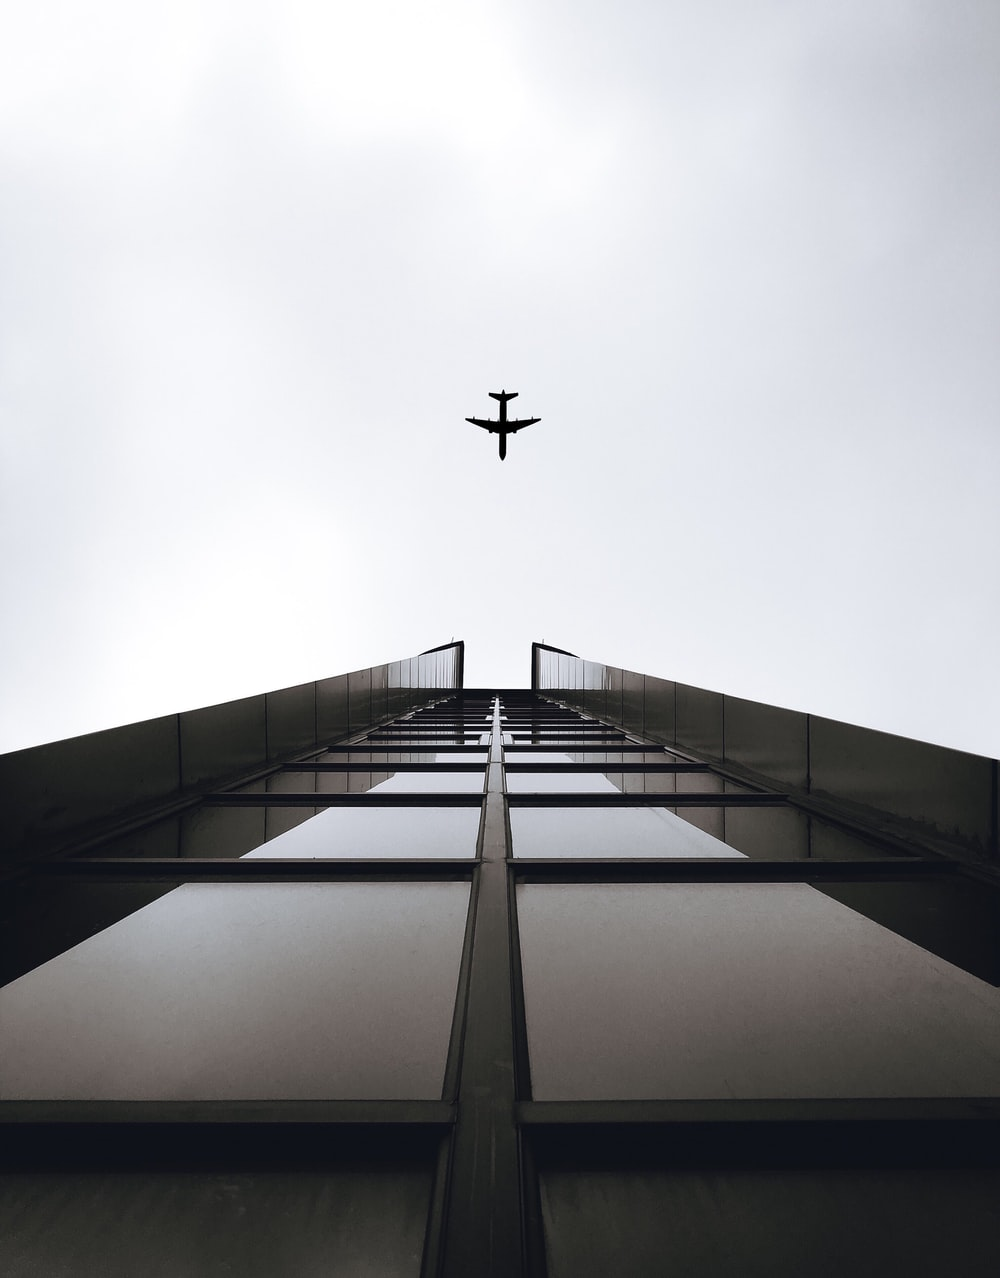 airplane on mid air